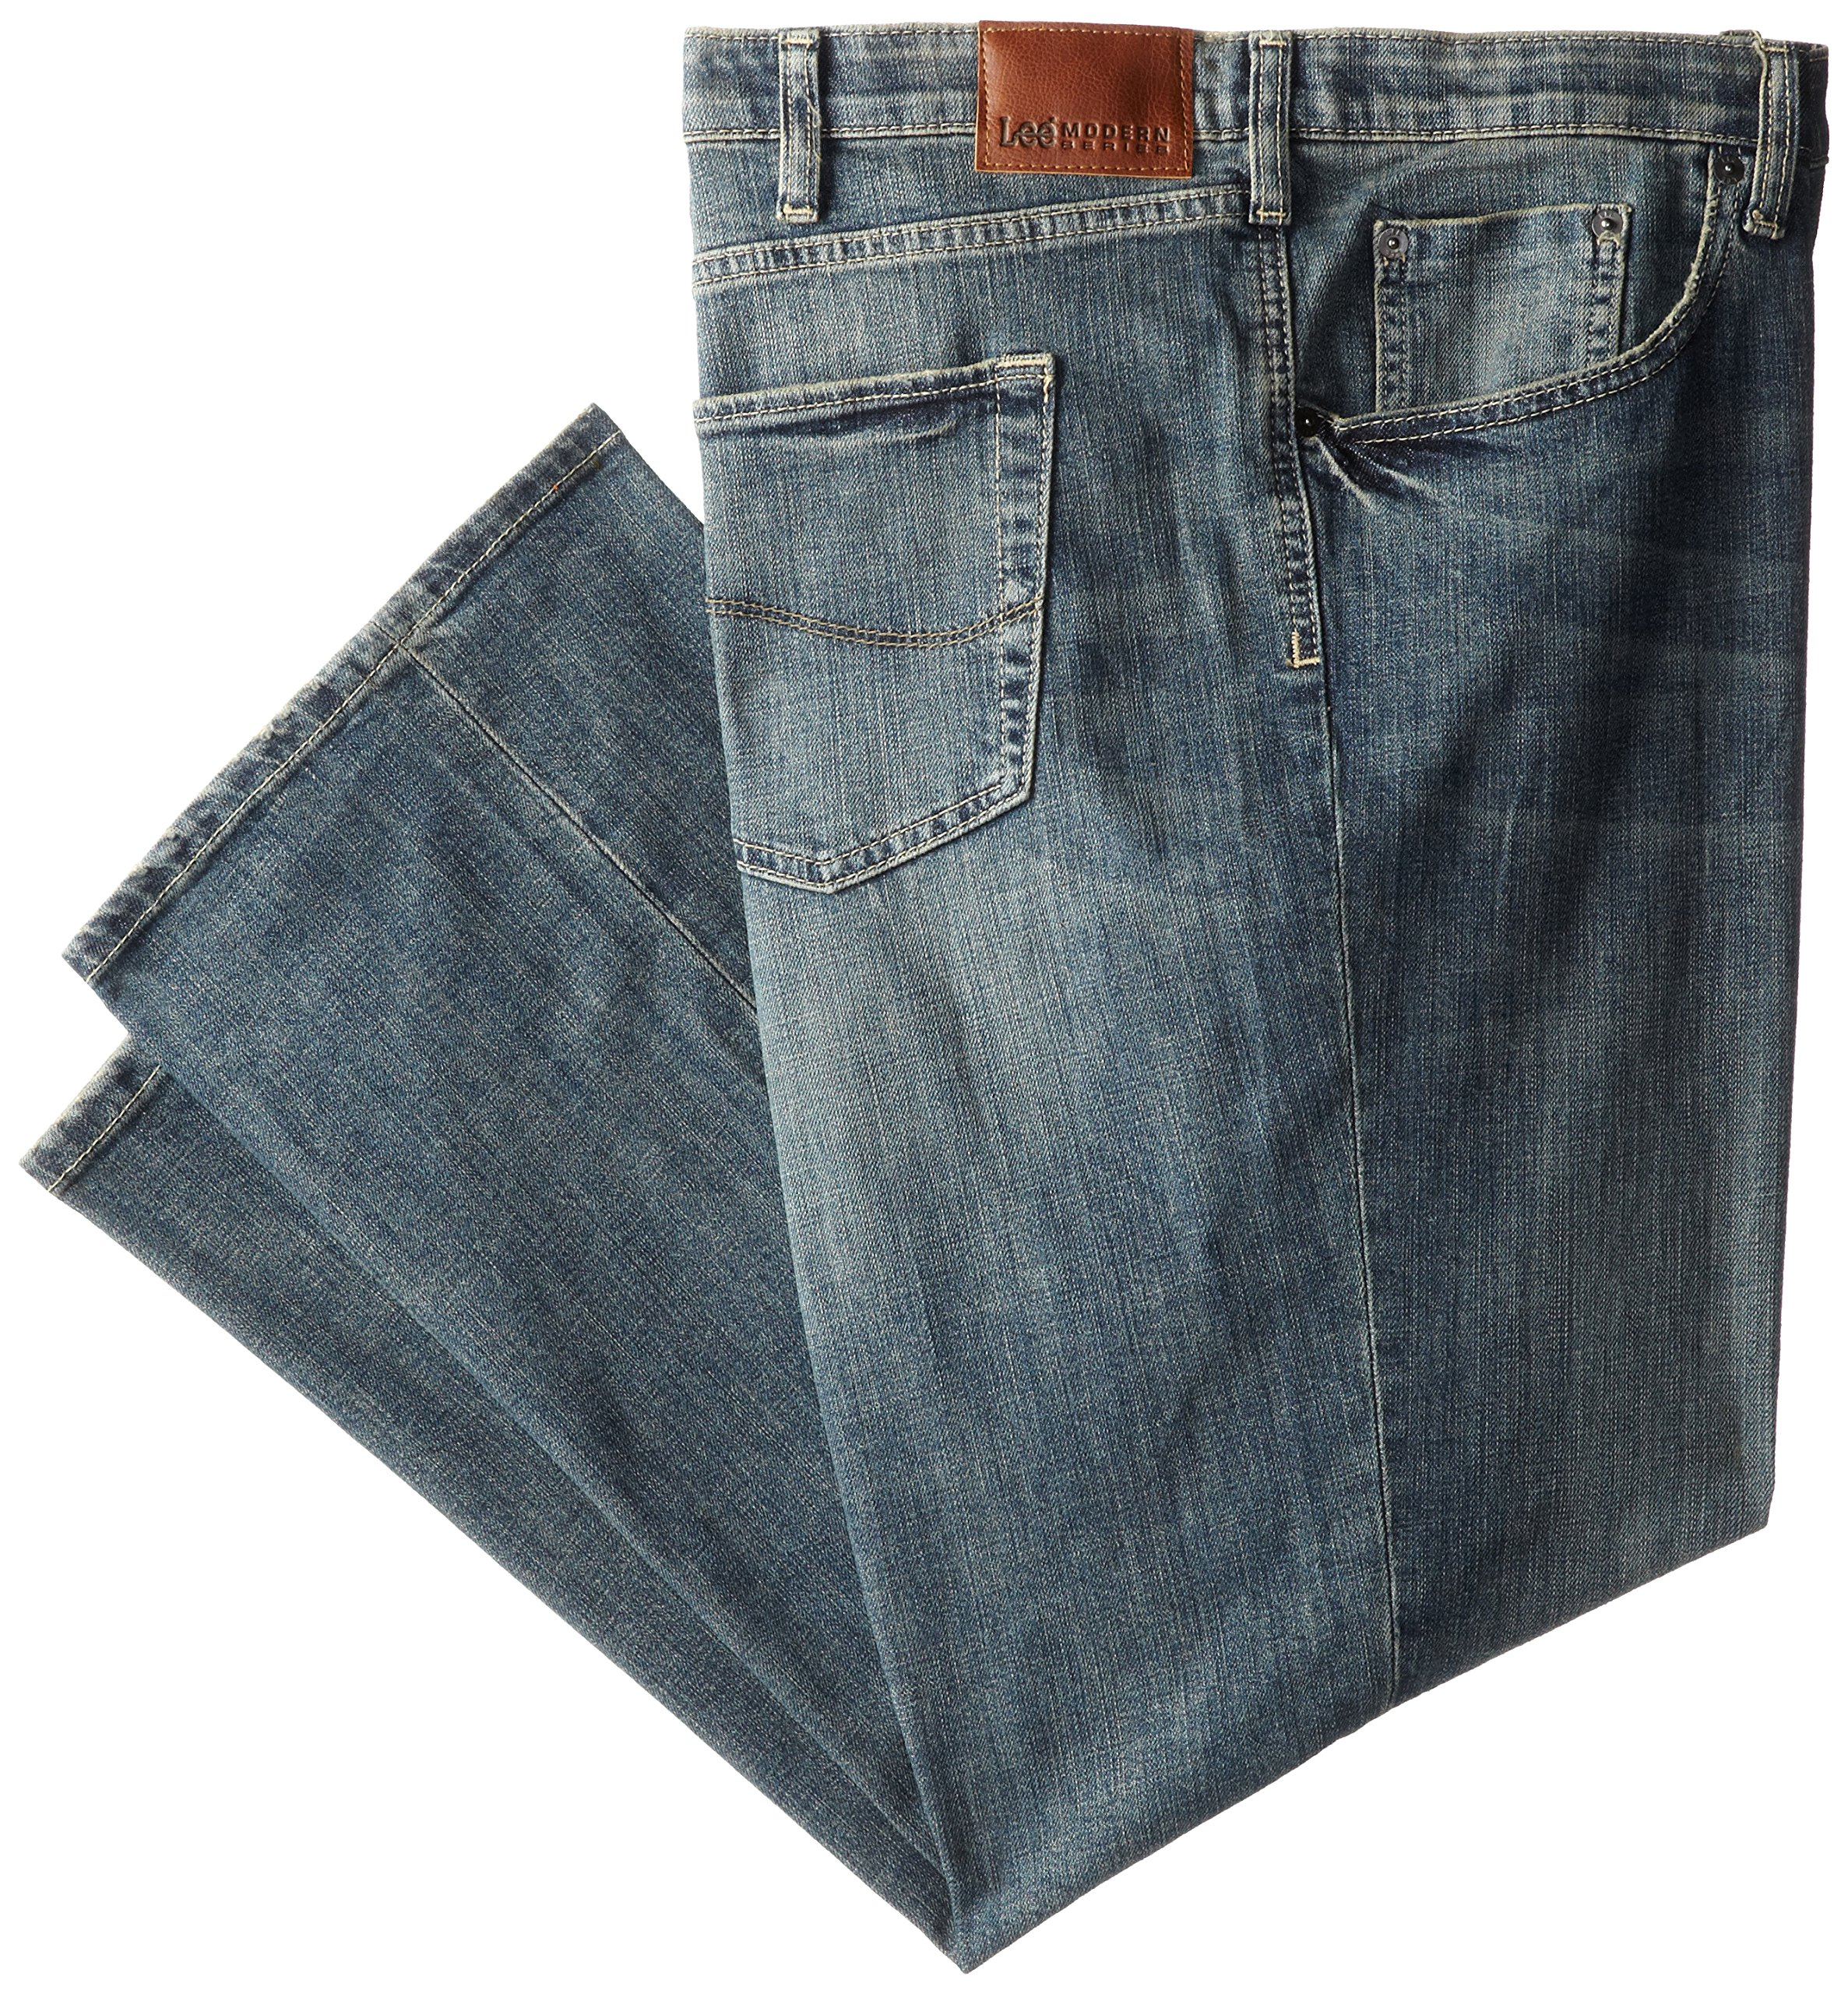 upc sizes upcitemdb image flare op wid pull comfort for sharpen plus pierce comforter pants on jeans com waist hei lee product bootcut